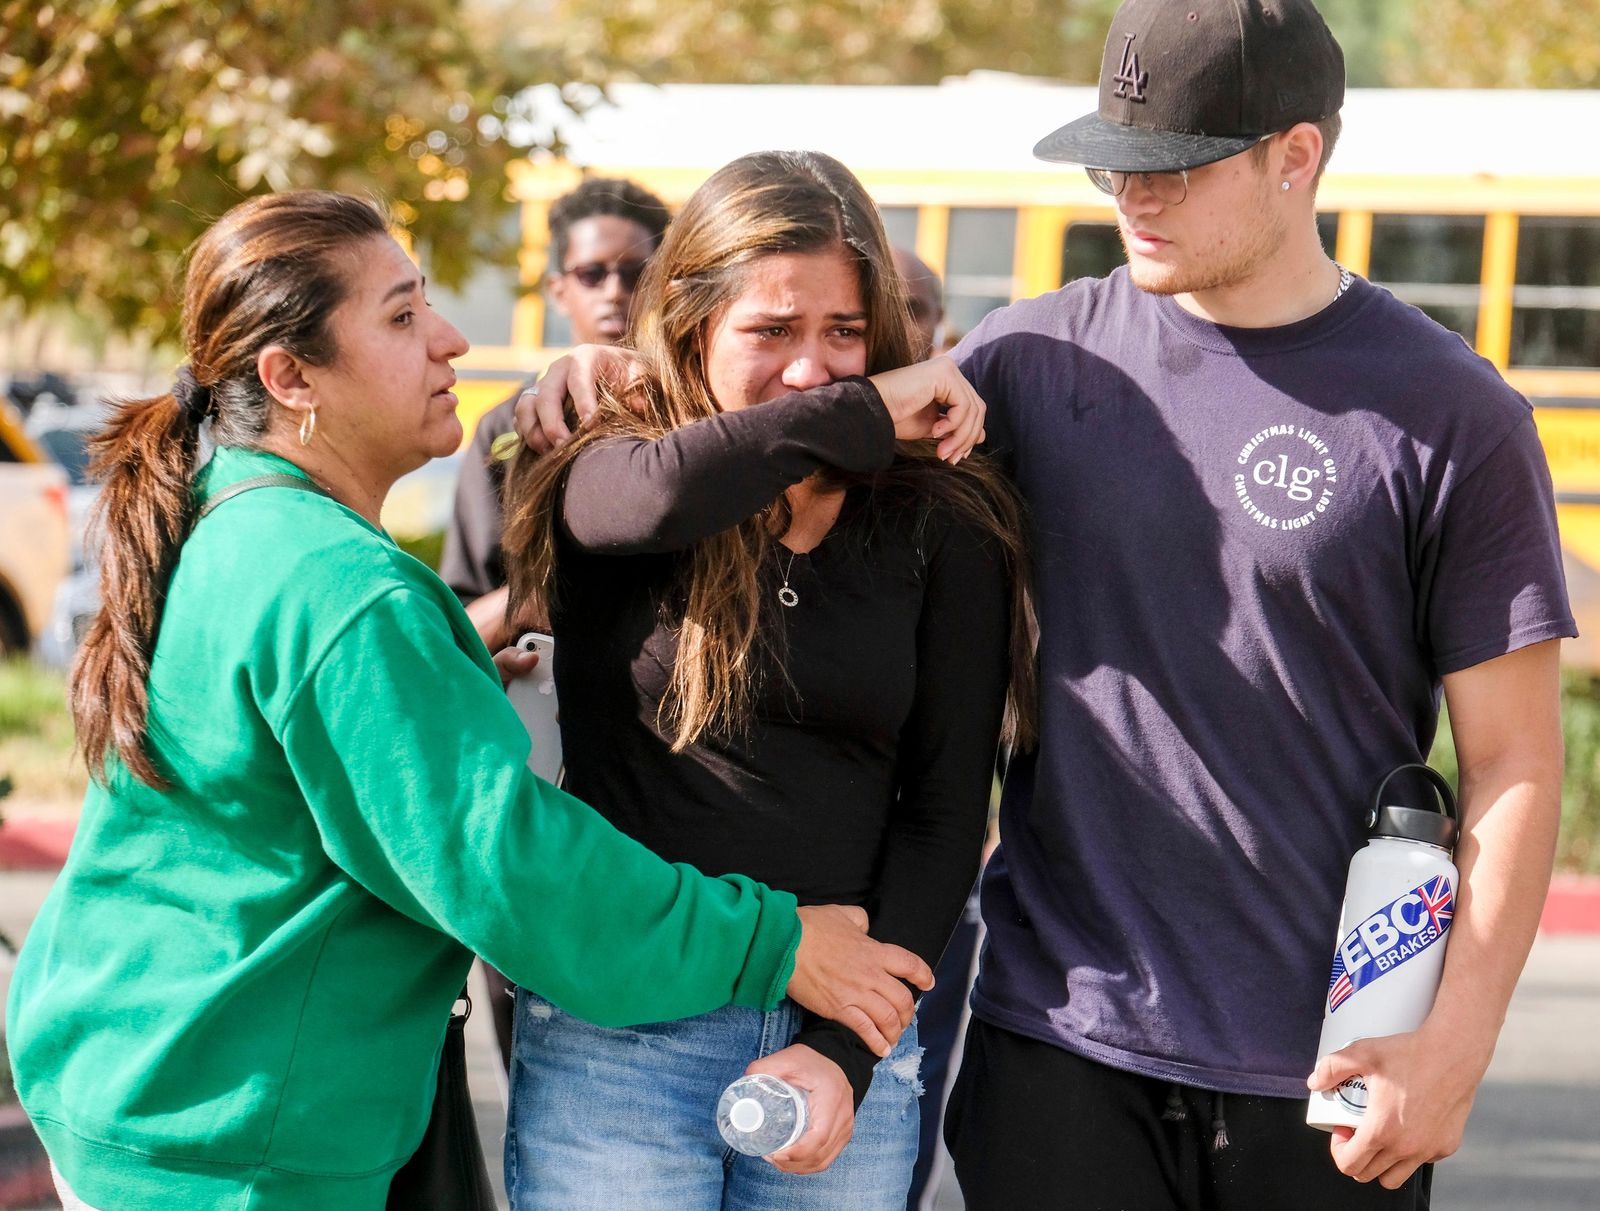 A student is comforted as she reunite at a park following a shooting at Saugus High School that injured several people, Thursday, Nov. 14, 2019, in Santa Clarita, Calif. (AP Photo/Ringo H.W. Chiu)